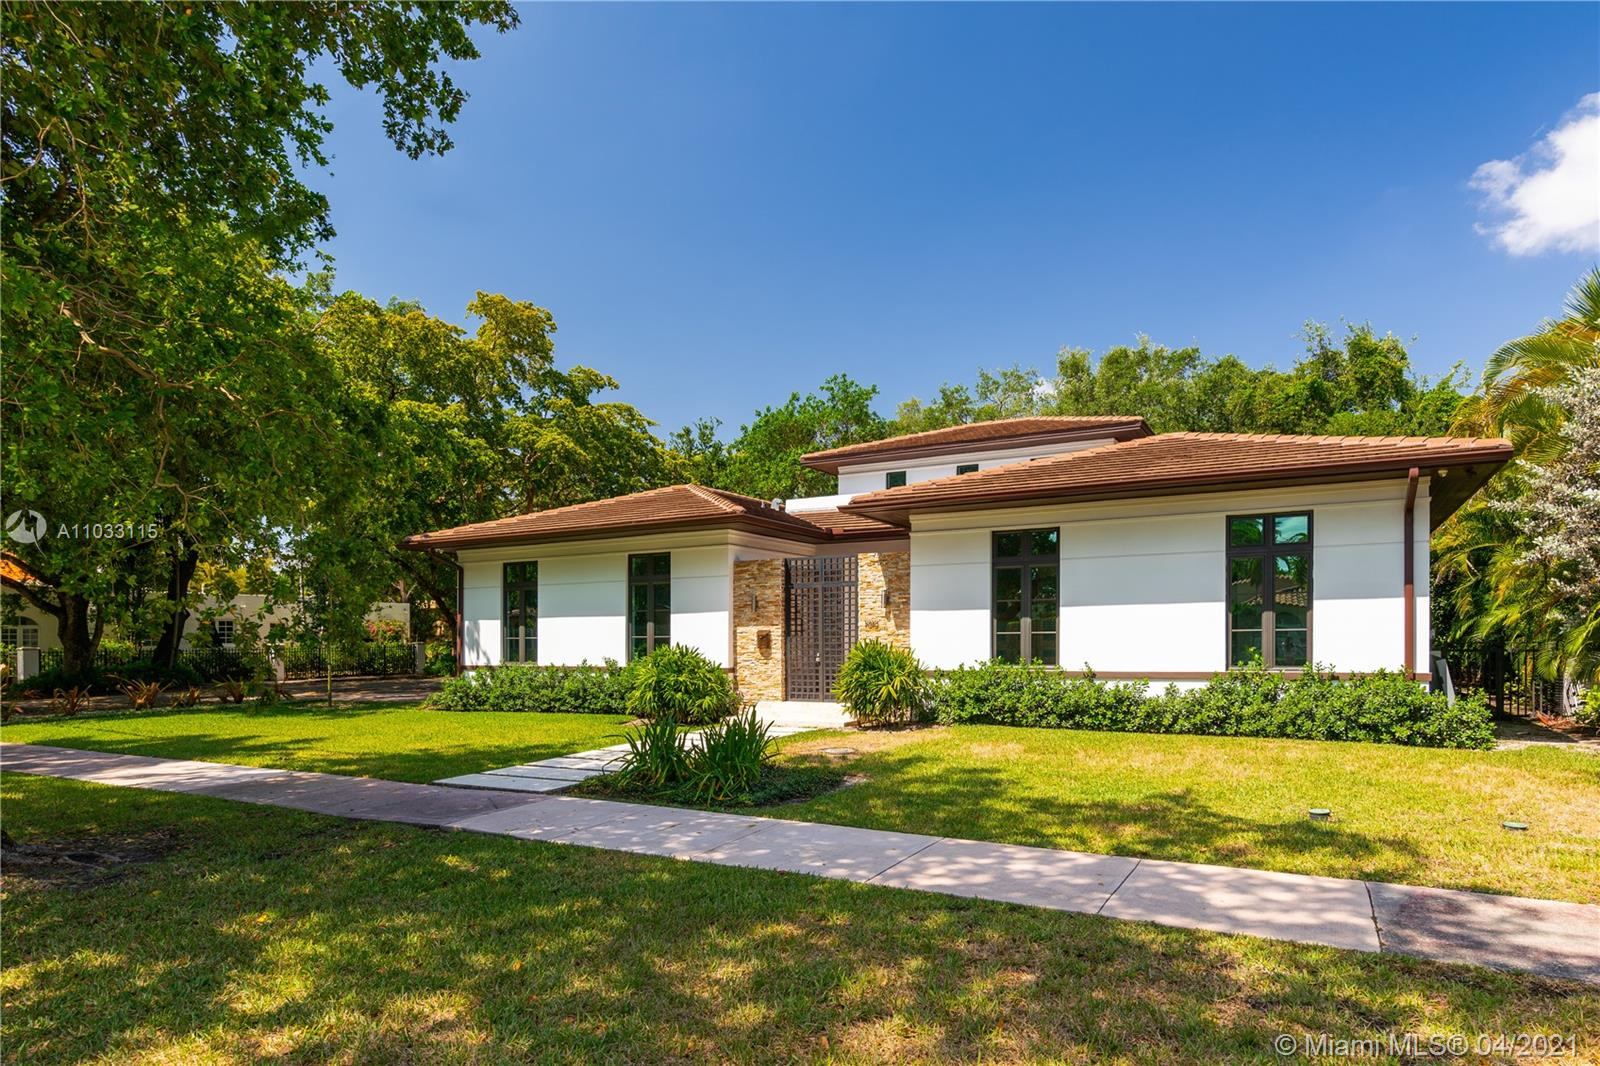 4 bedroom/4 ½ bath with great curb appeal, a summer kitchen, pool and 2 car garage in a great Coral Gables location.